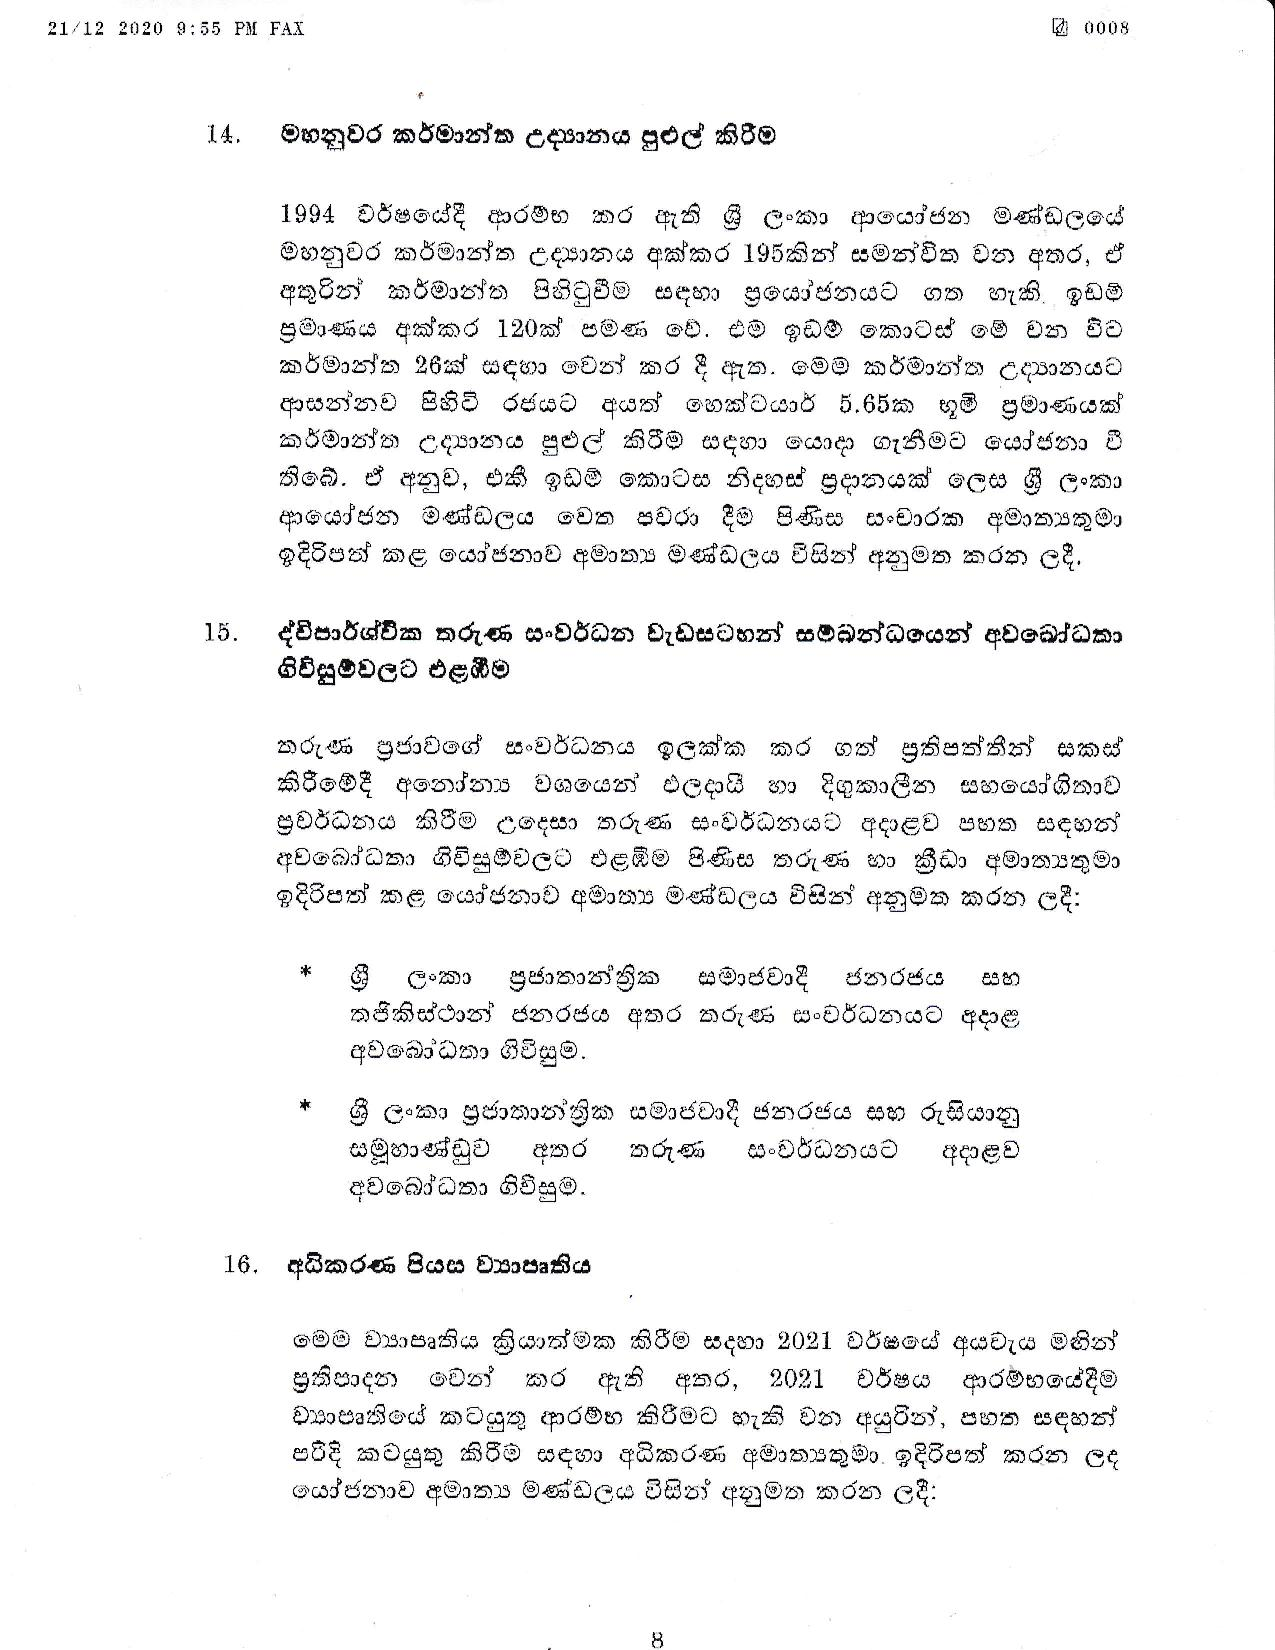 Cabinet Decision on 21.12.2020 page 008